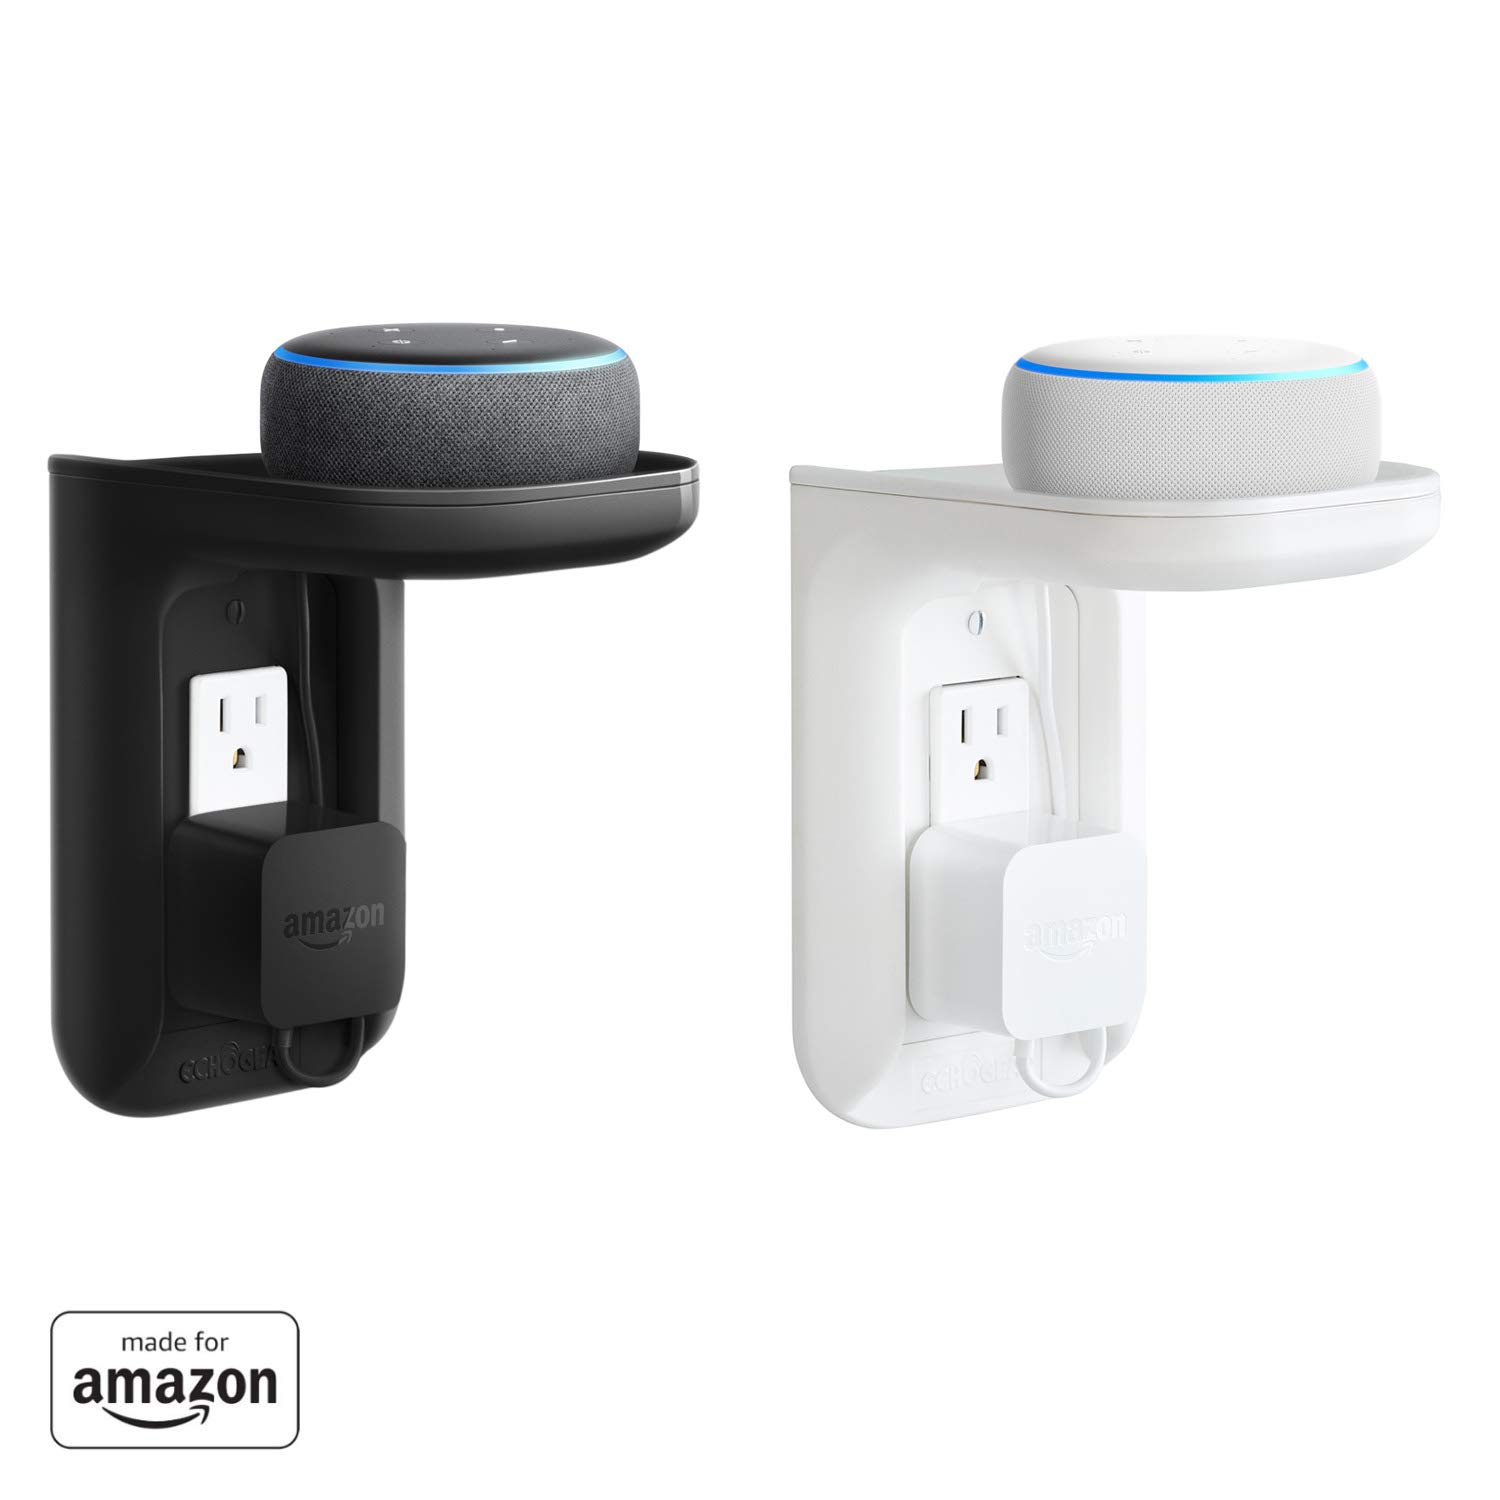 """Made for Amazon"" ECHOGEAR Outlet Shelf for Echo Dot (3rd Gen & Kids edition), Echo Plus (2nd Gen), and all previous Echo generations, White (EGOS1-W1)"